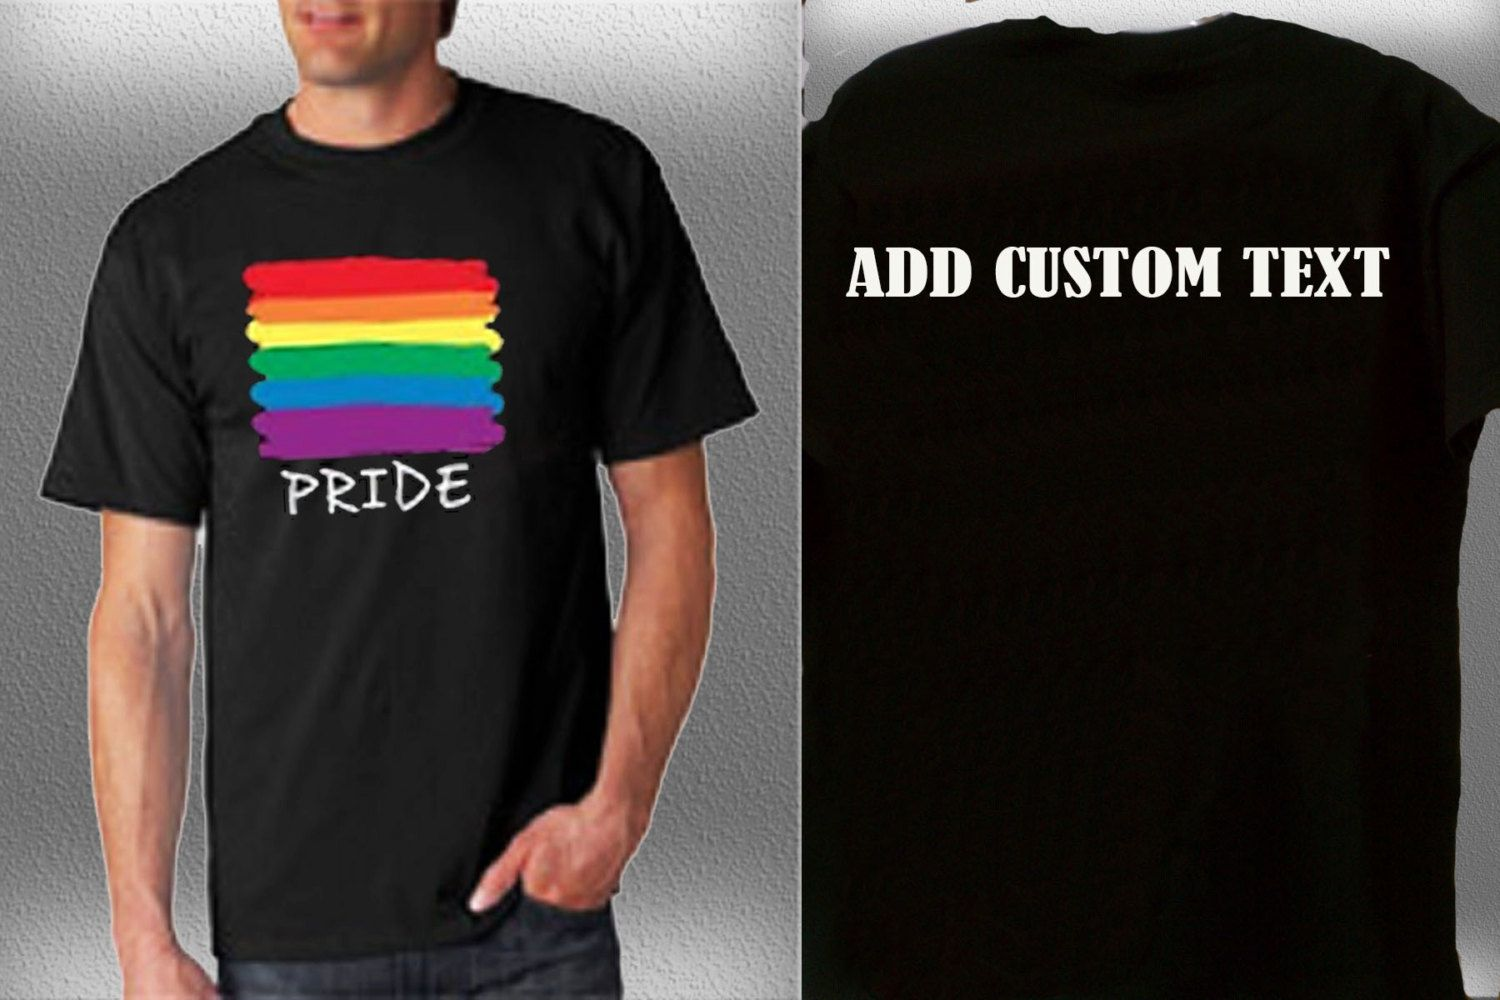 Gay Pride Shirt Add Custom Text LGBT Support Respect Rainbow Bisexual  Relationship Marriage Legal Colors Mens Womens Homosexual Gifts by  StraightWholesale ...